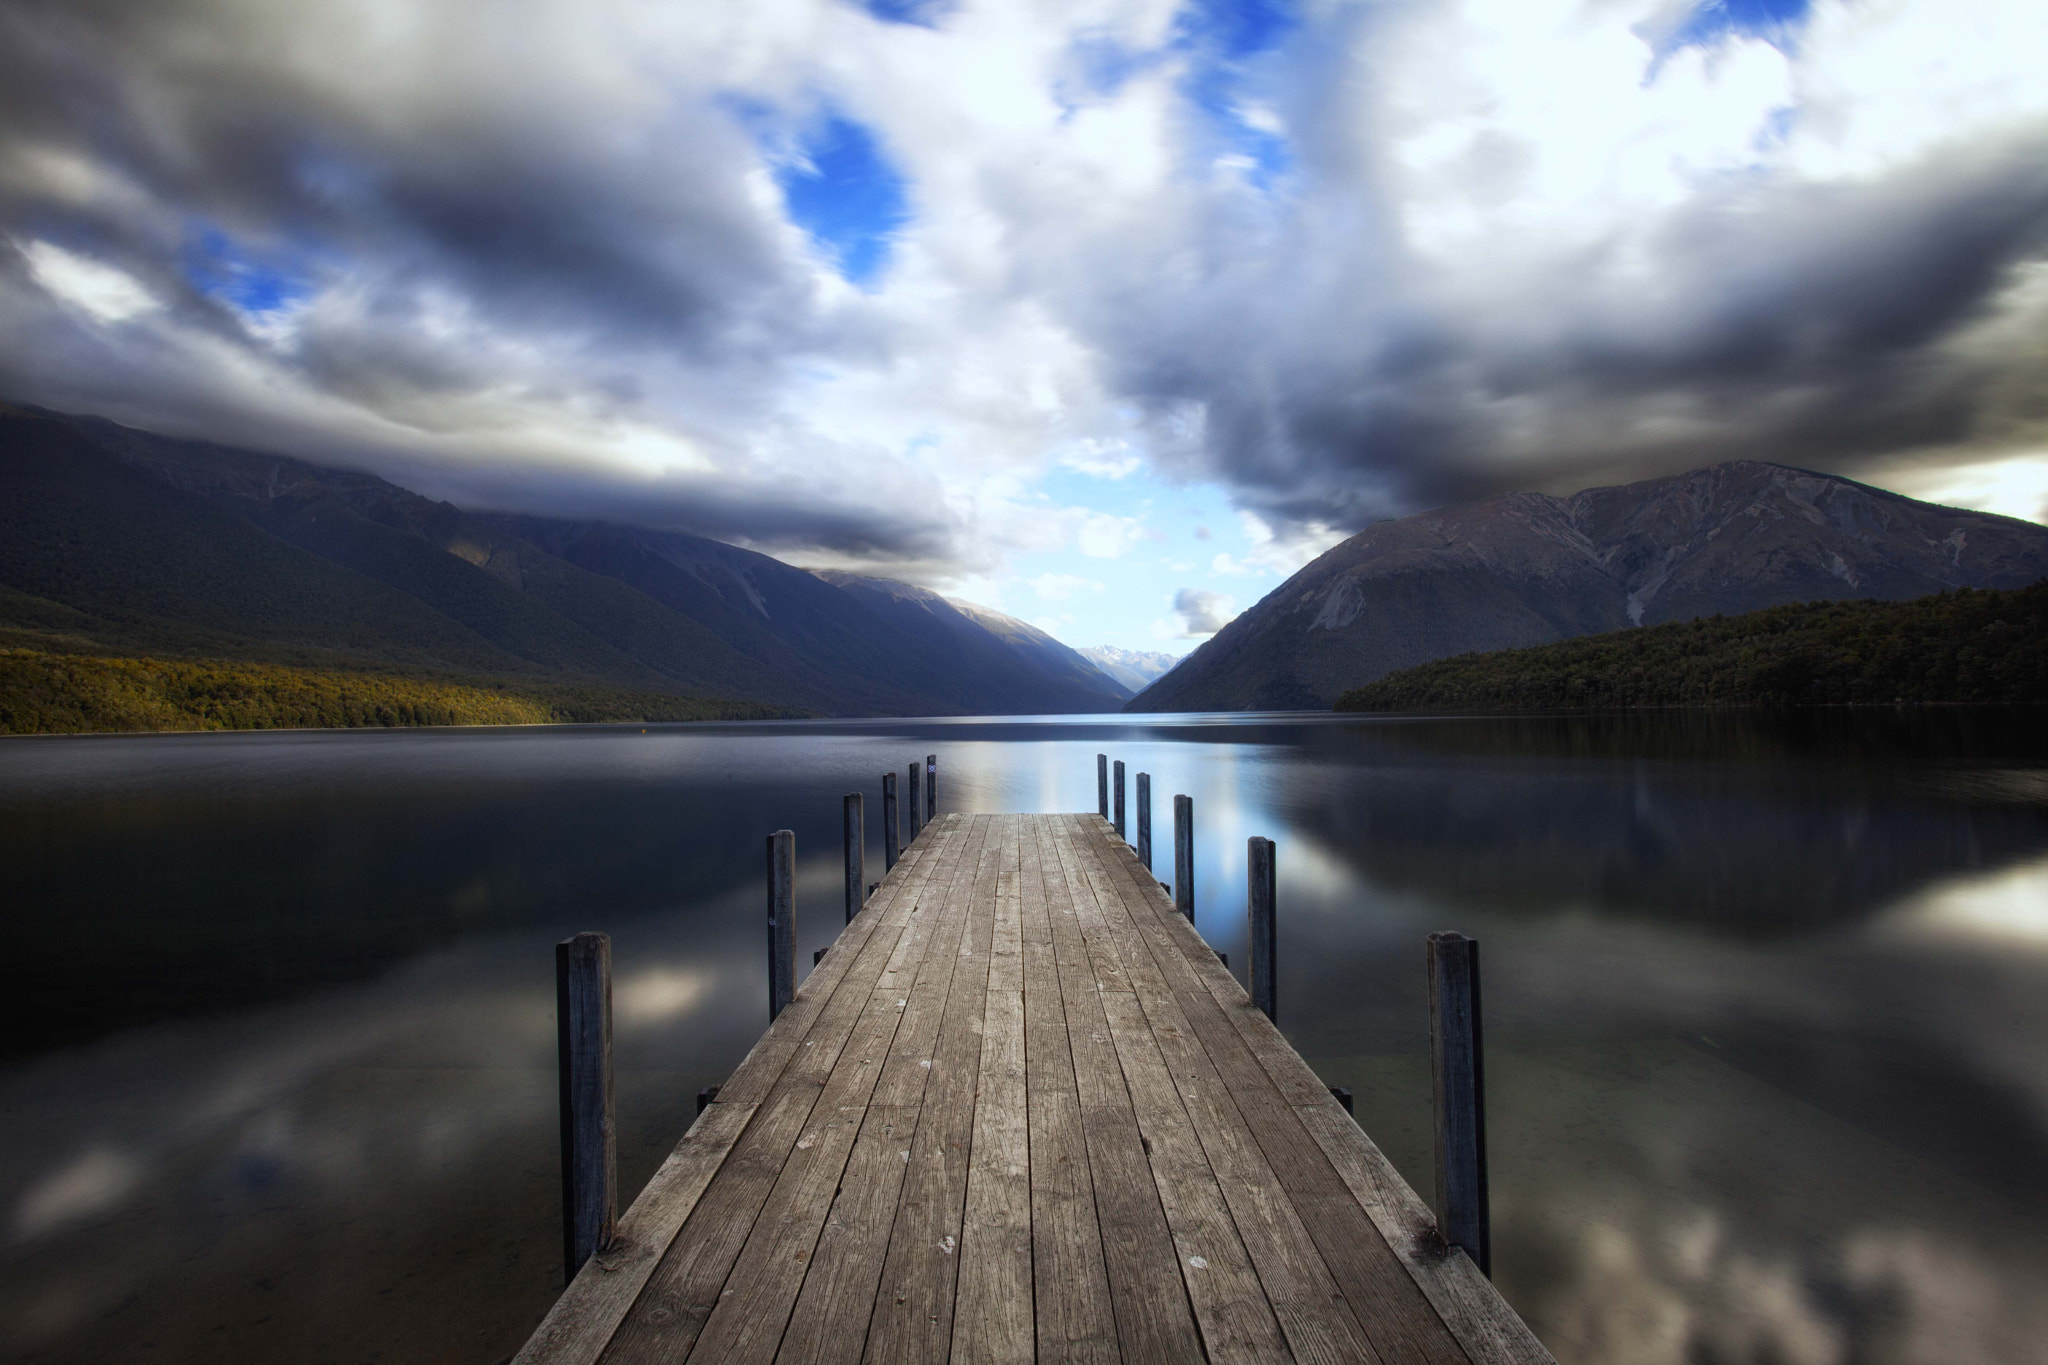 Photograph Simplicity by damien Lee on 500px